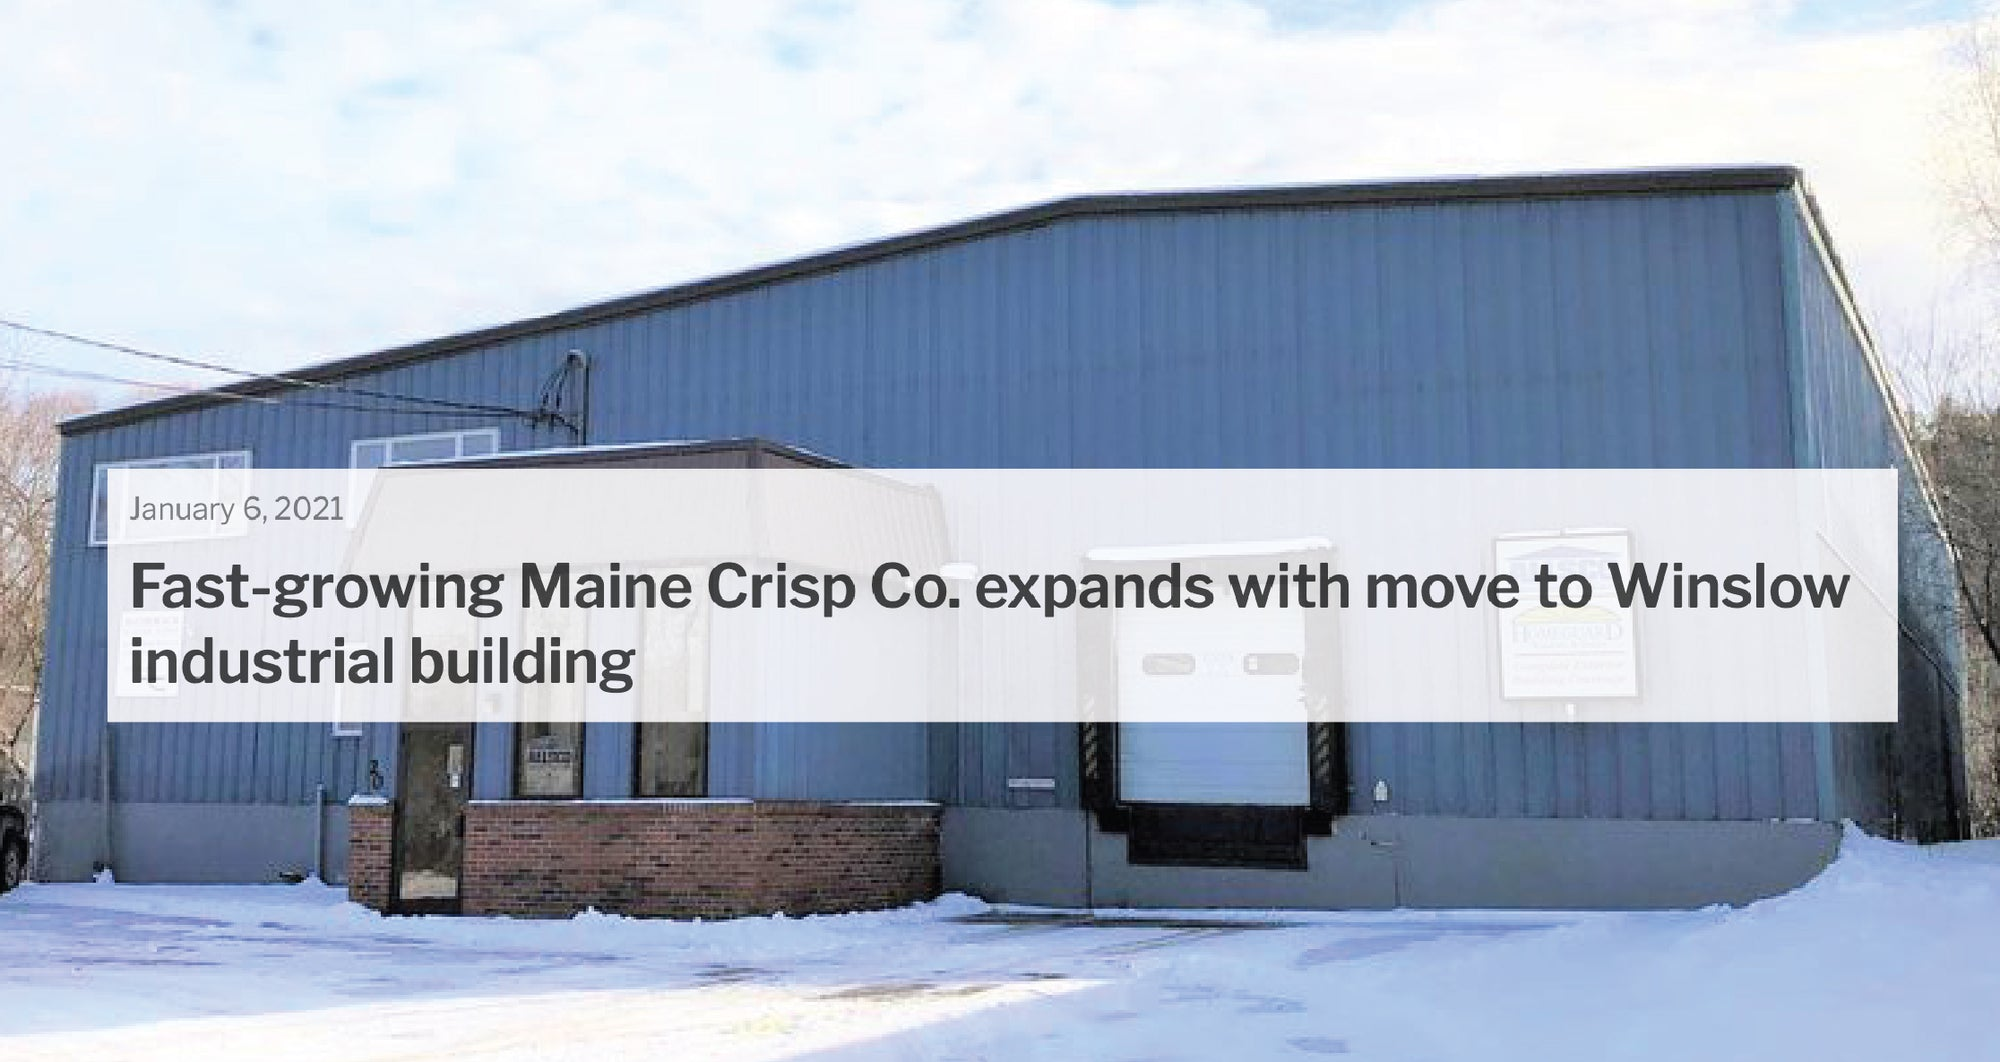 Fast-Growing Maine Crisp Co. Expands With Move to Winslow Industrial Building